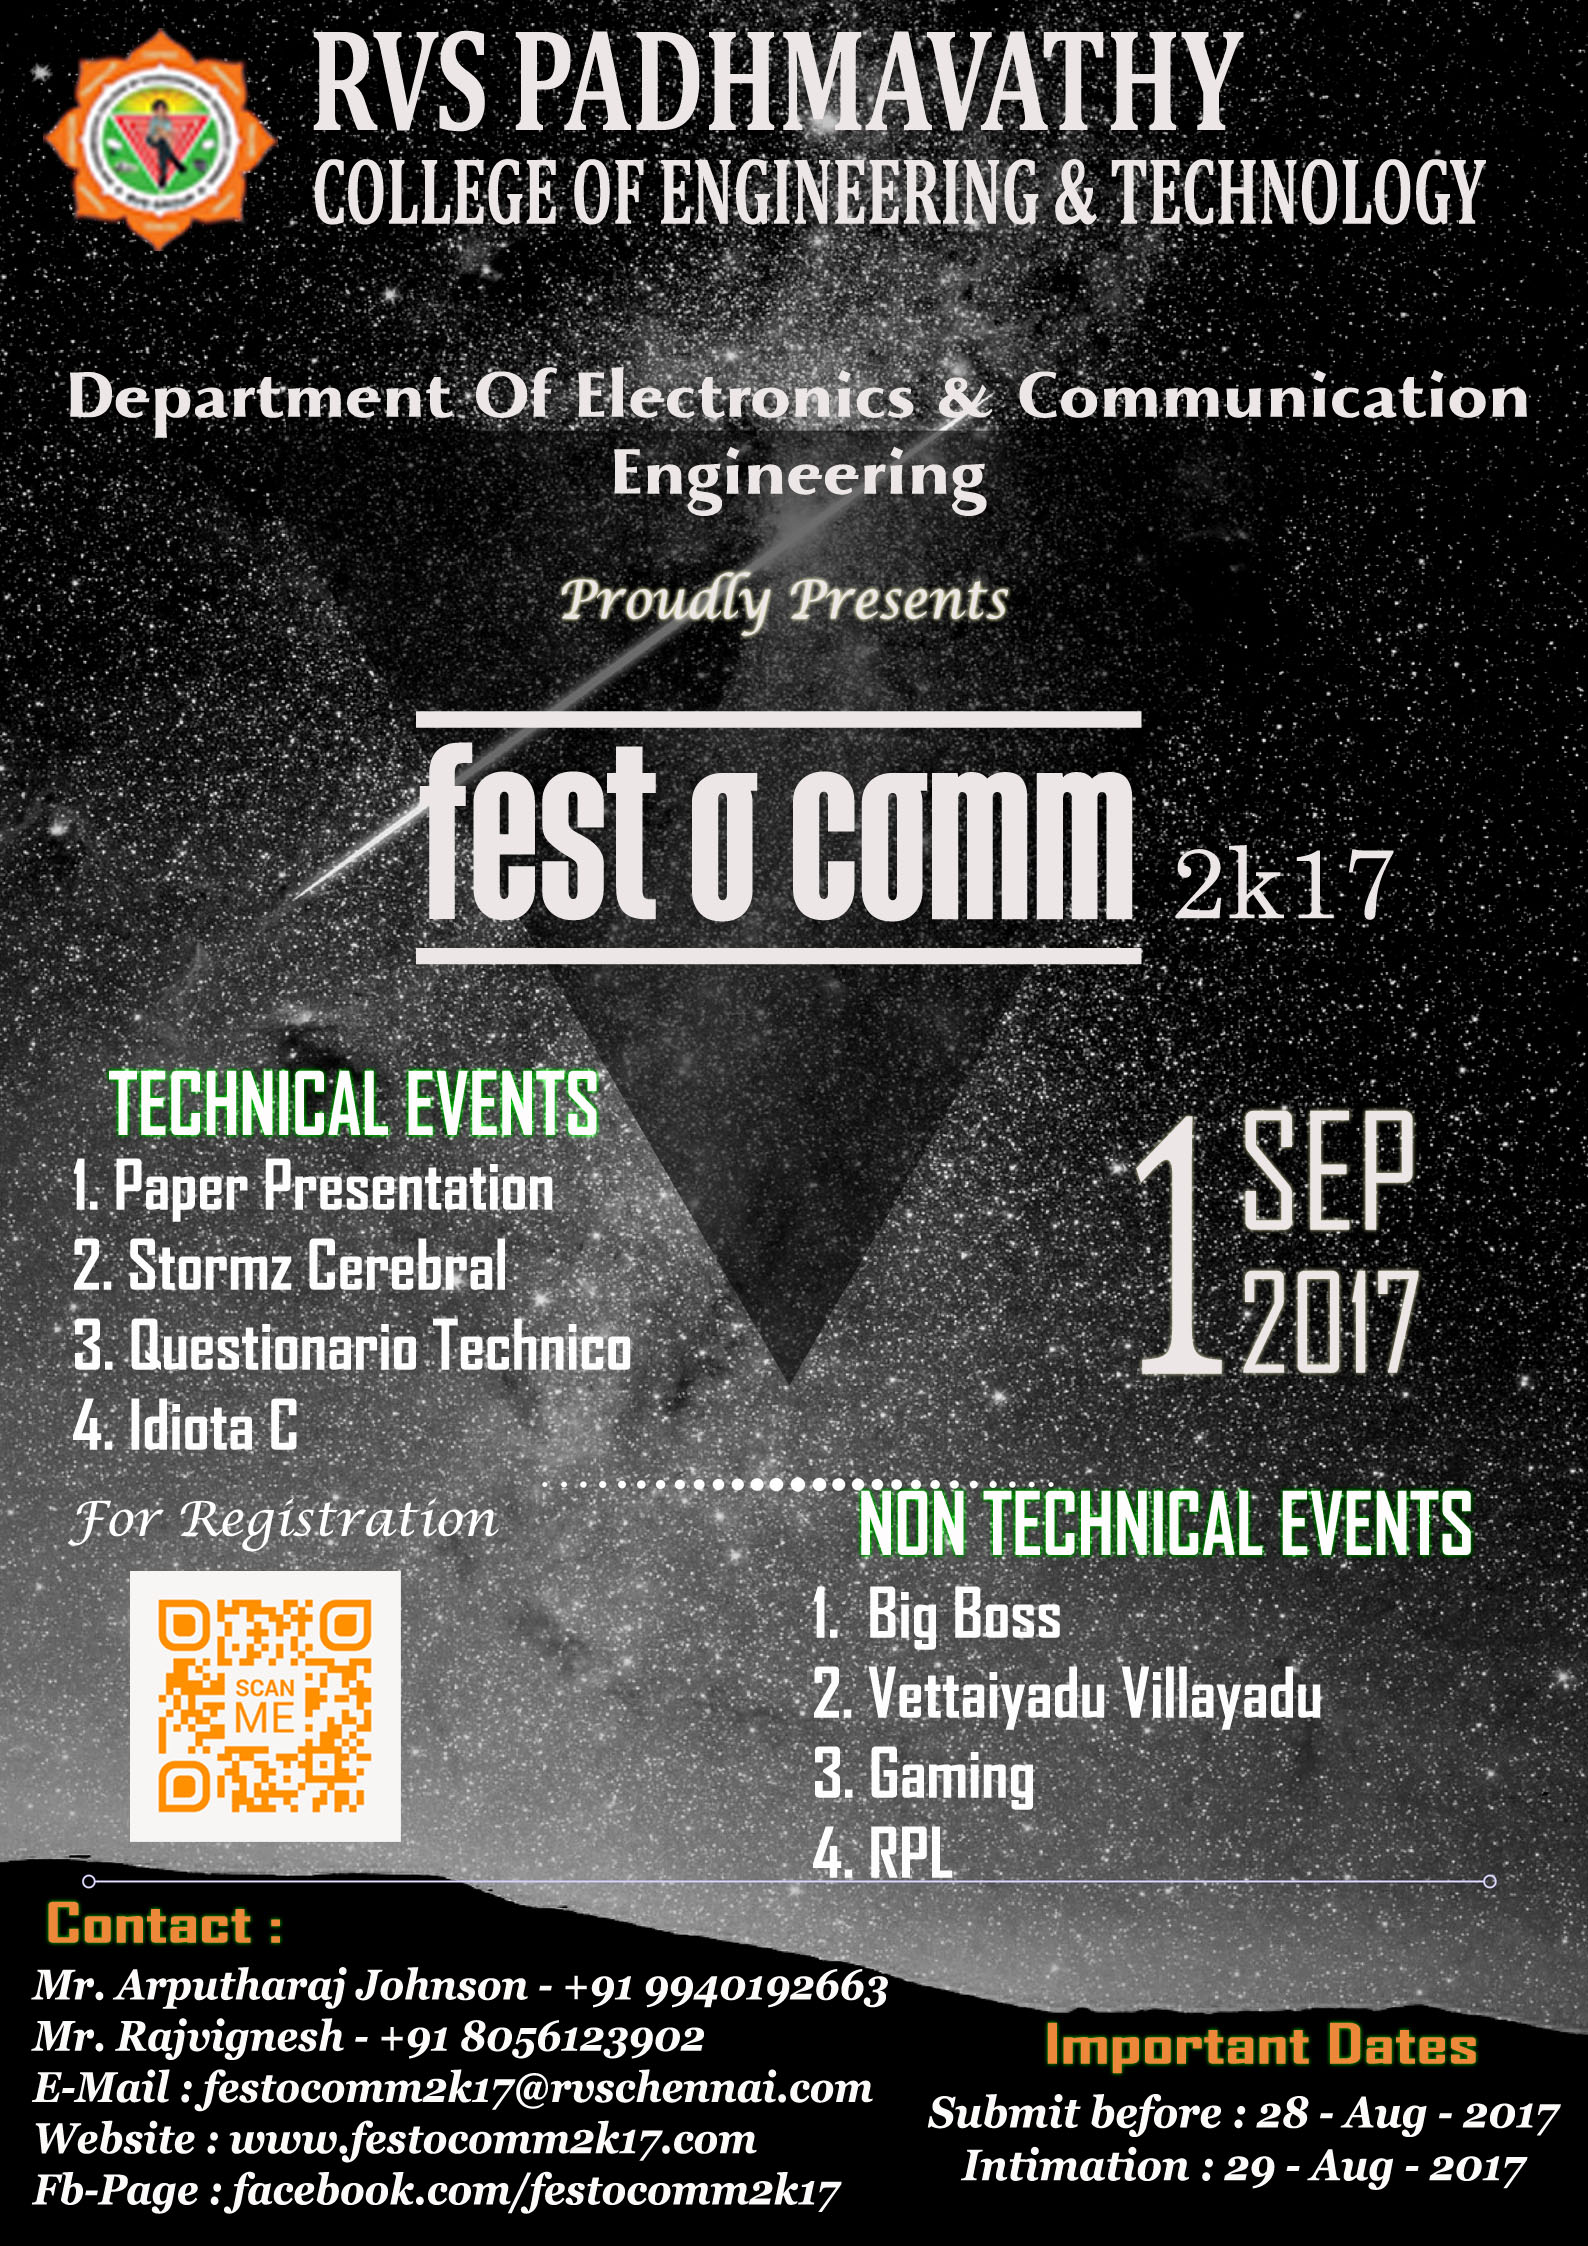 Festocomm 2k17, RVS Padhmavathy College of Engineering and